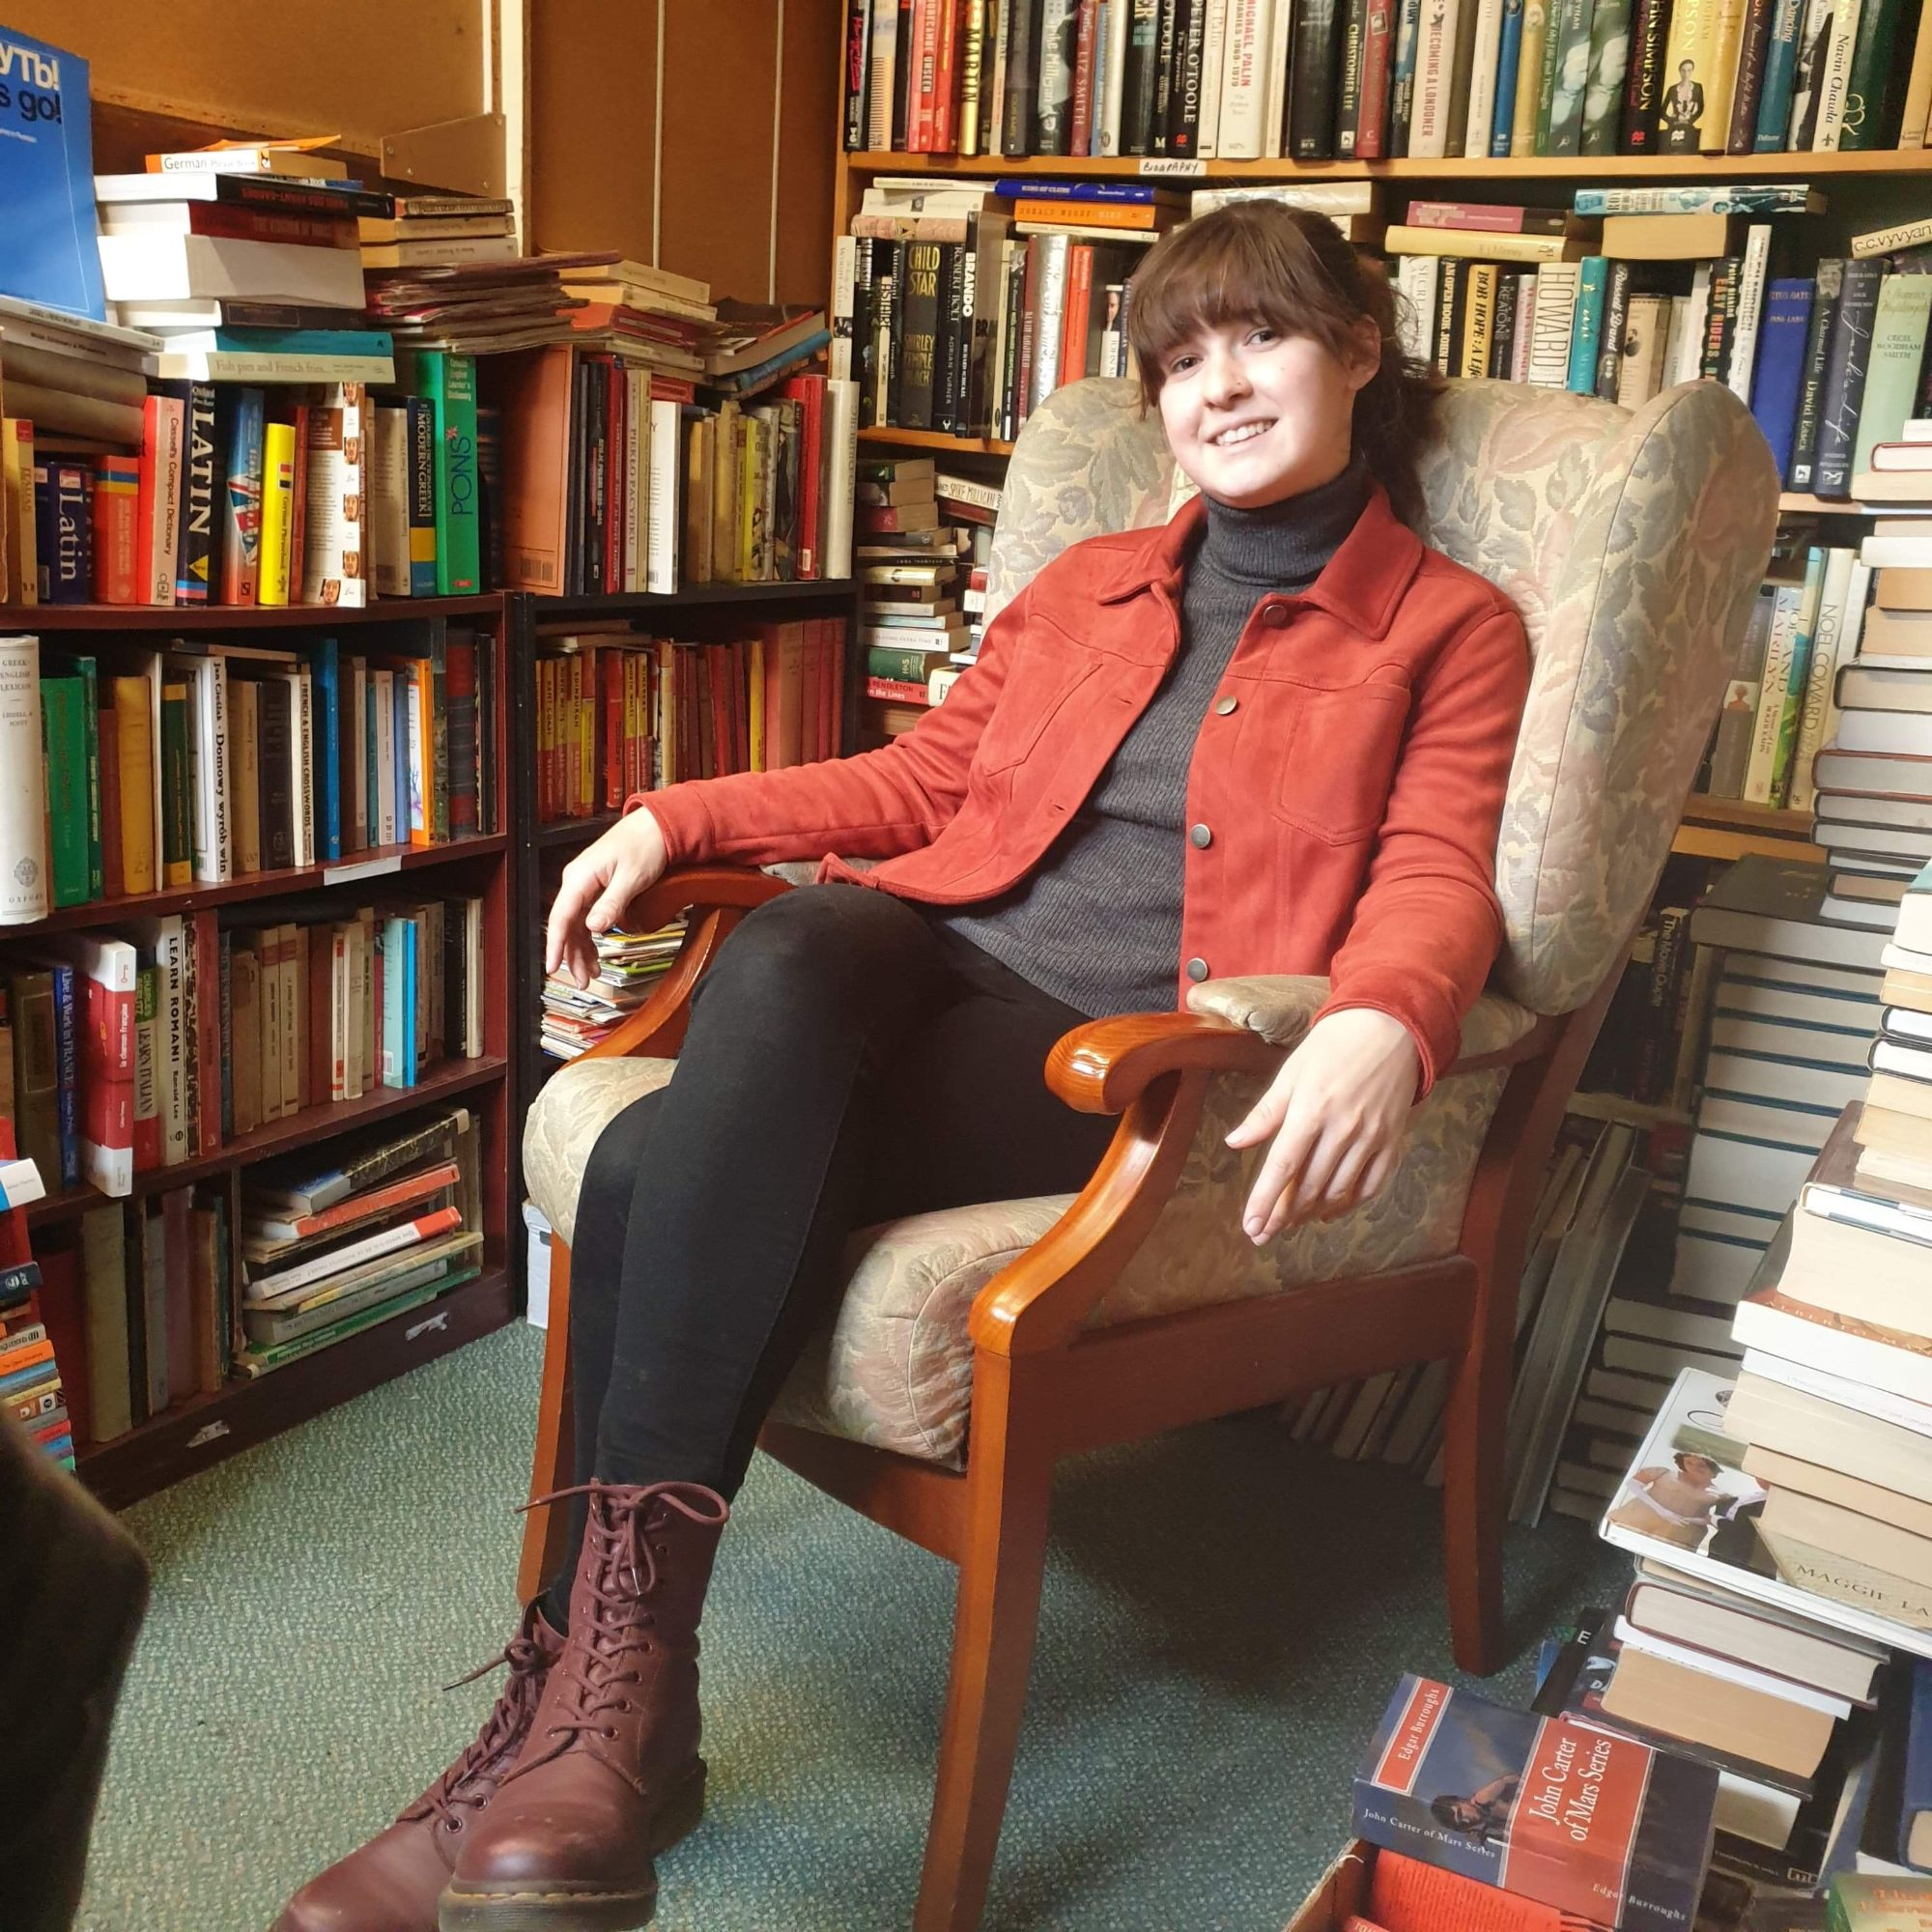 Rachel sits in a chair smiling surrounded by books